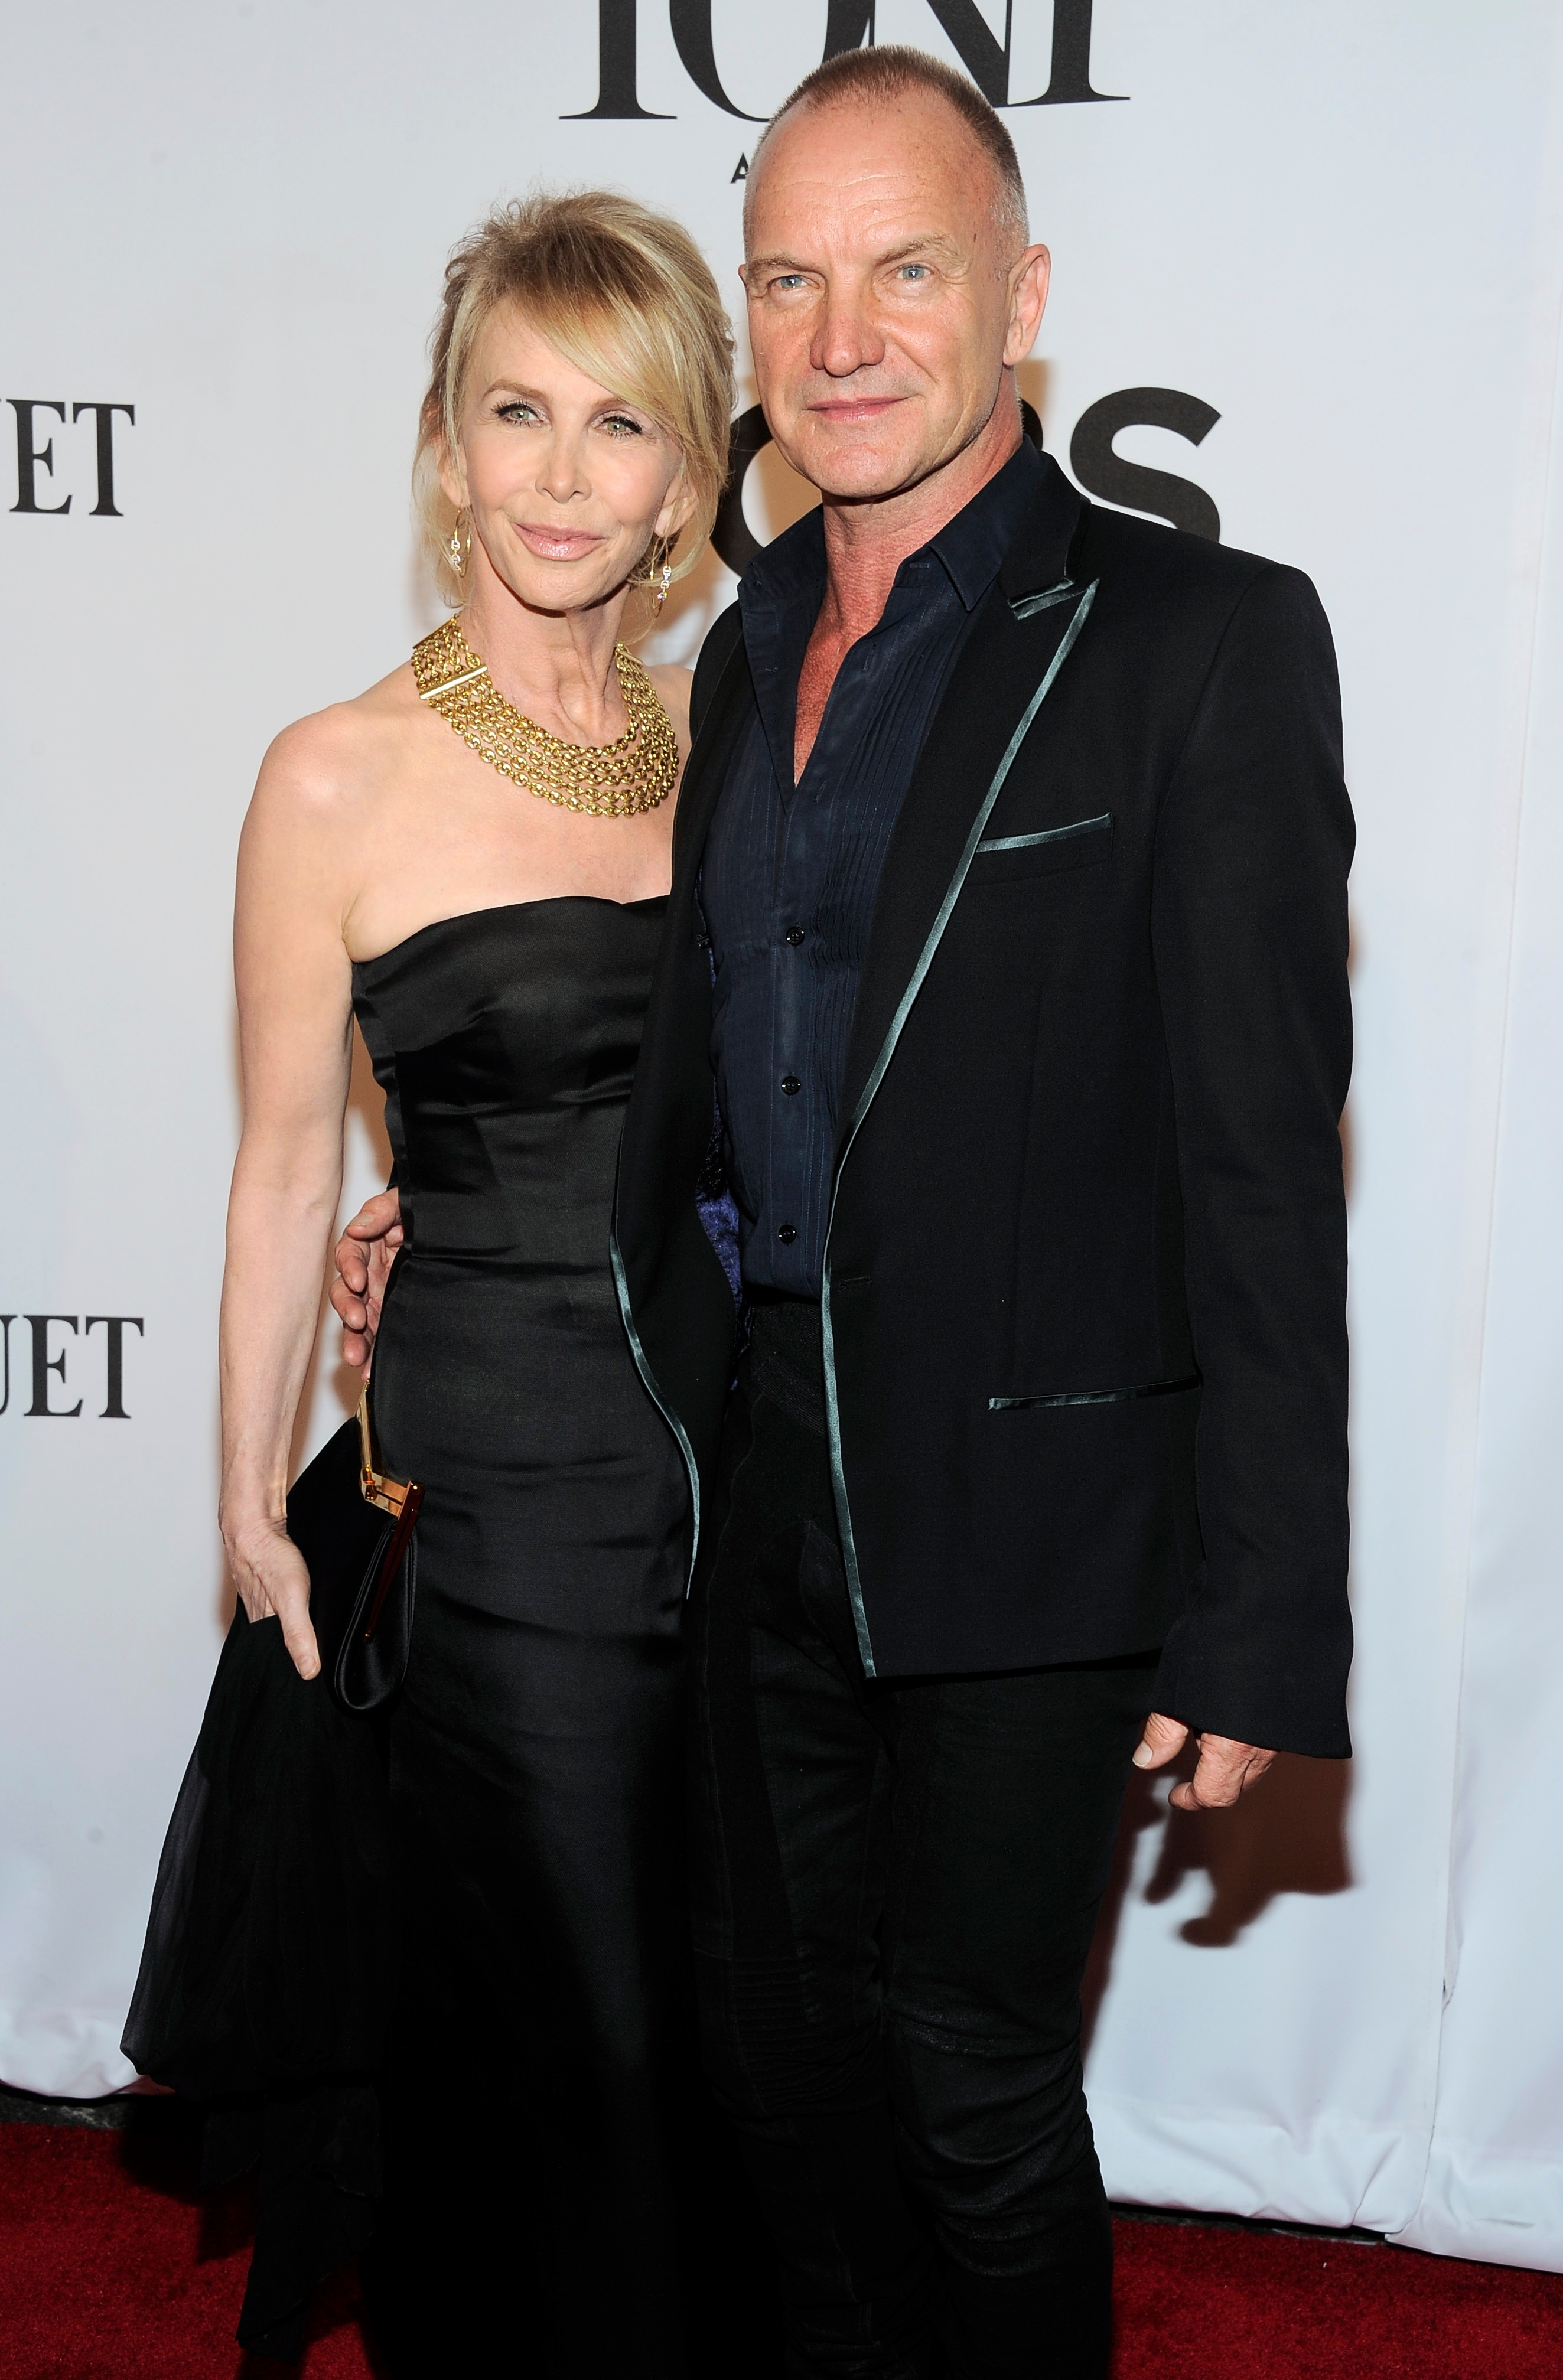 Sting credits Trudie Styler with his success